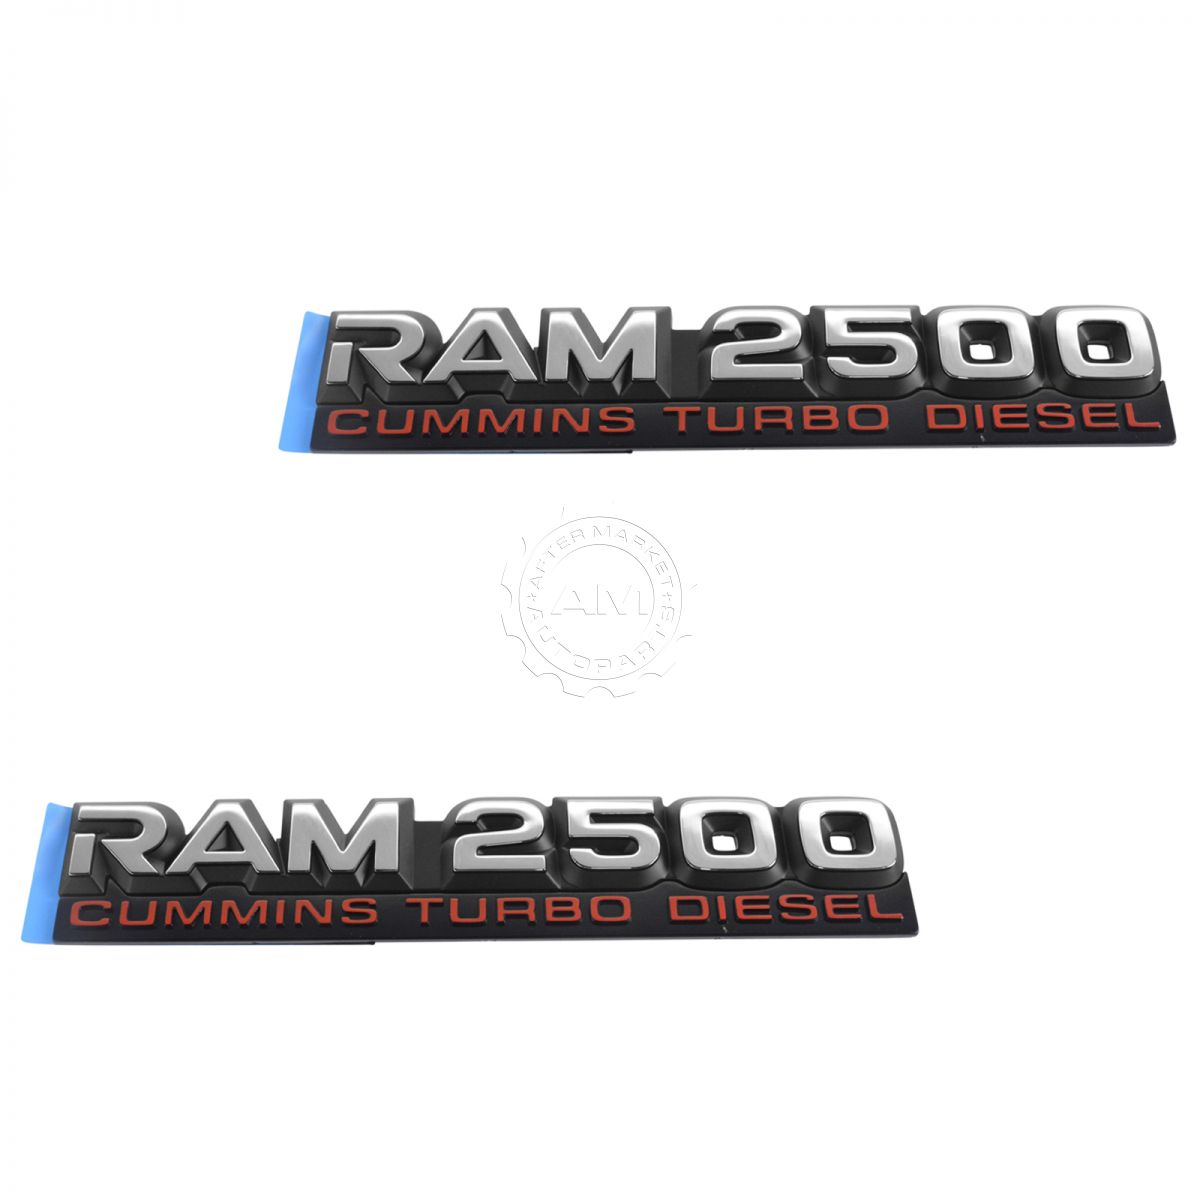 Cummins Turbo Diesel >> Oem Ram 2500 Cummins Turbo Diesel Door Nameplate Emblem Pair Set For